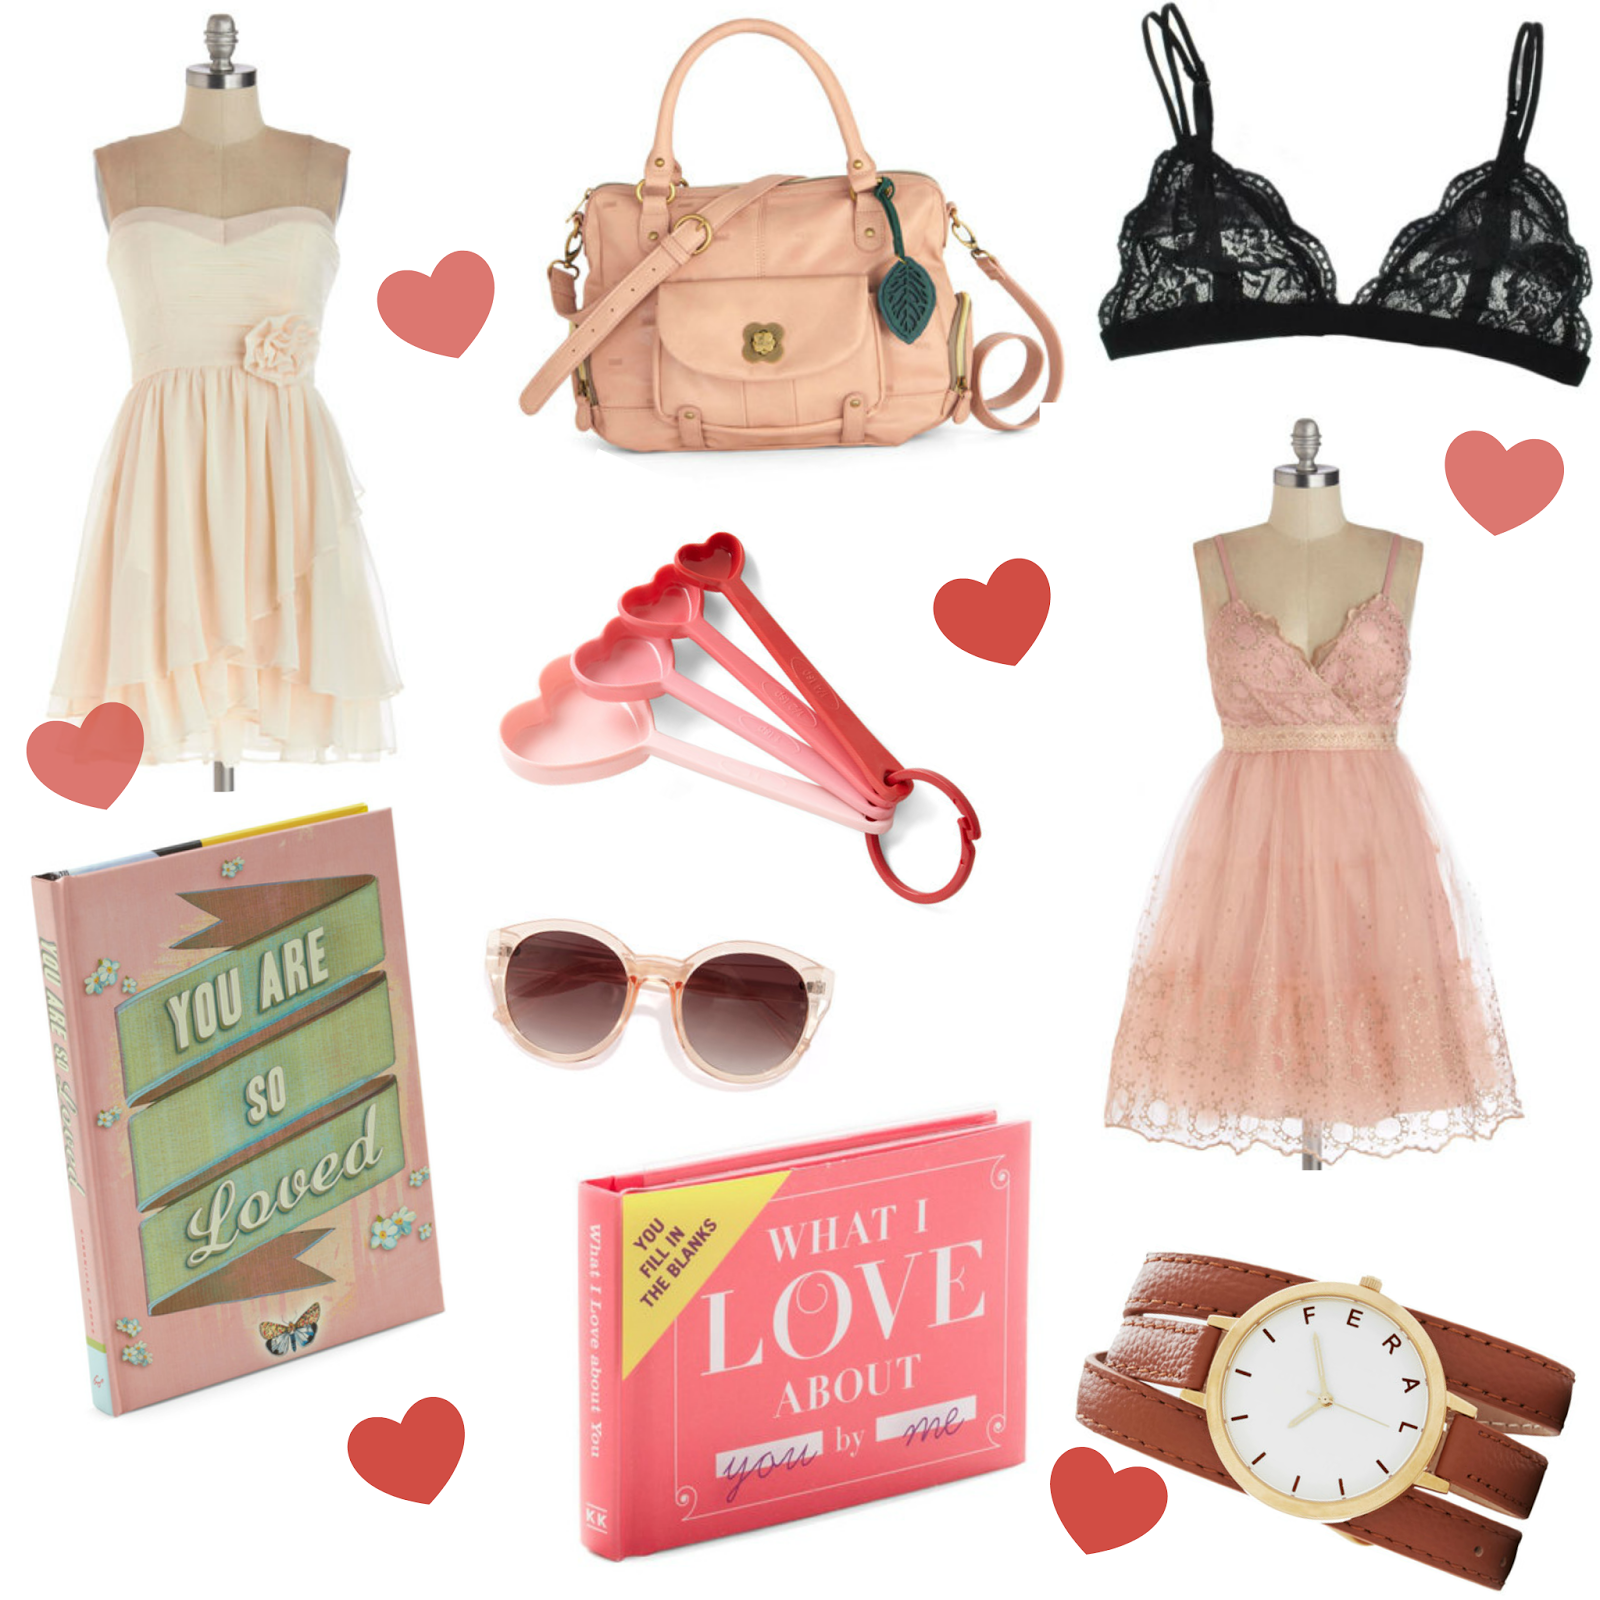 what to get your girlfriend for valentines day a really cute idea for v day is to pick out an outfit for your partner to wear and take them out for a - What To Get Your Girl For Valentines Day